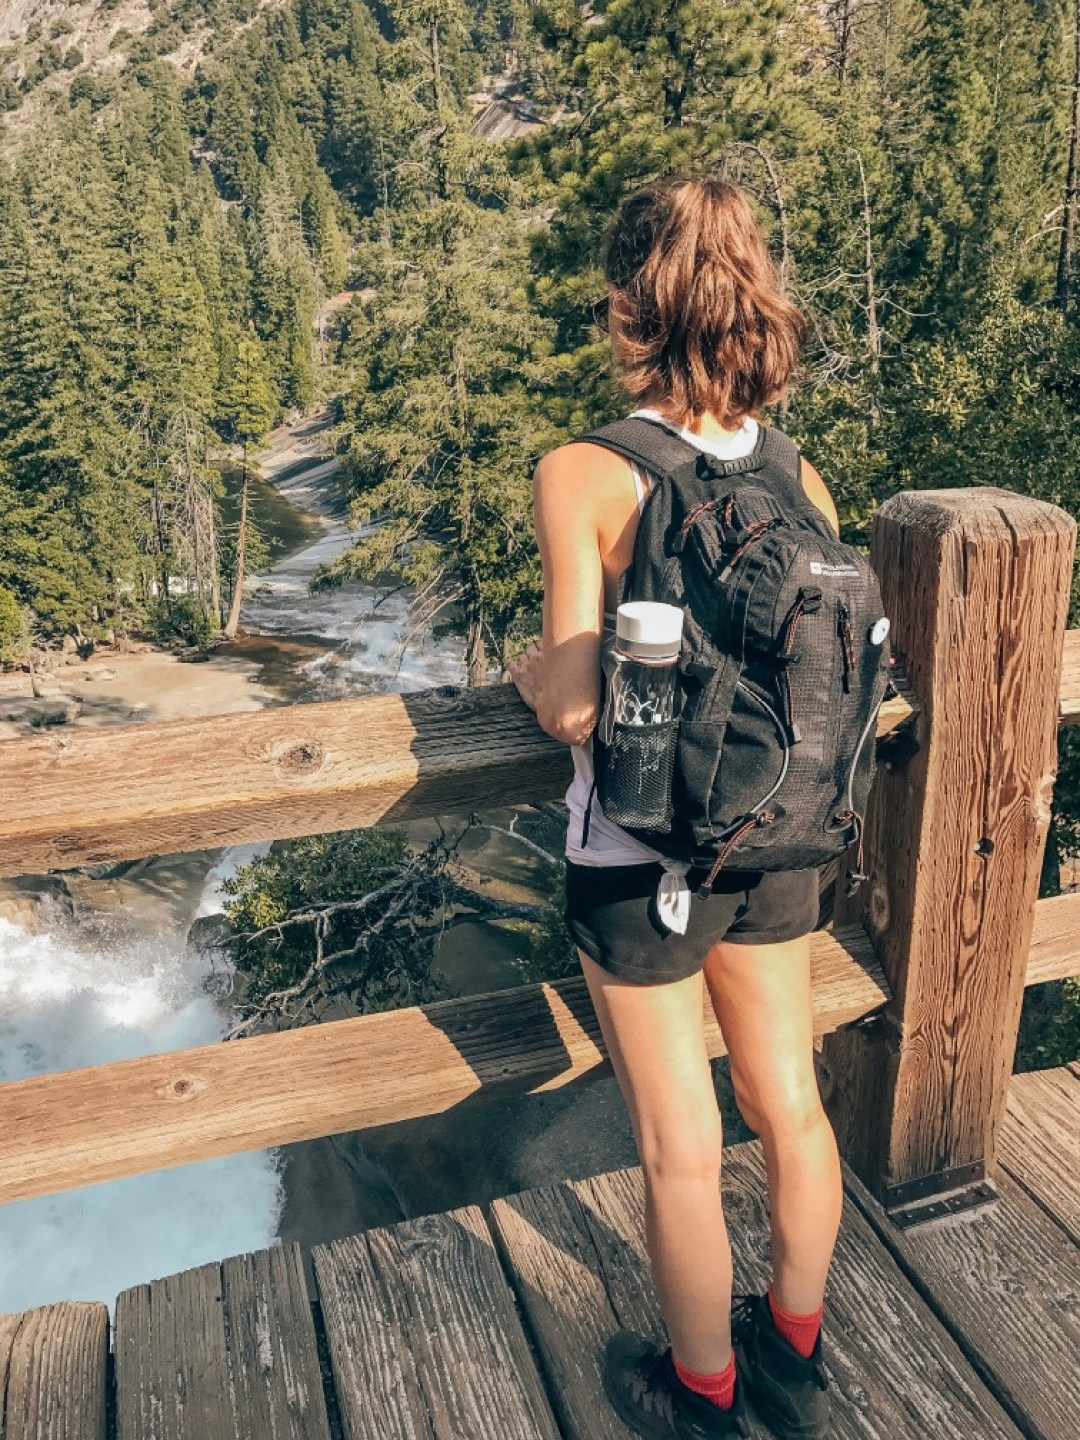 How You Can Use the Outdoors for Your Mental Health